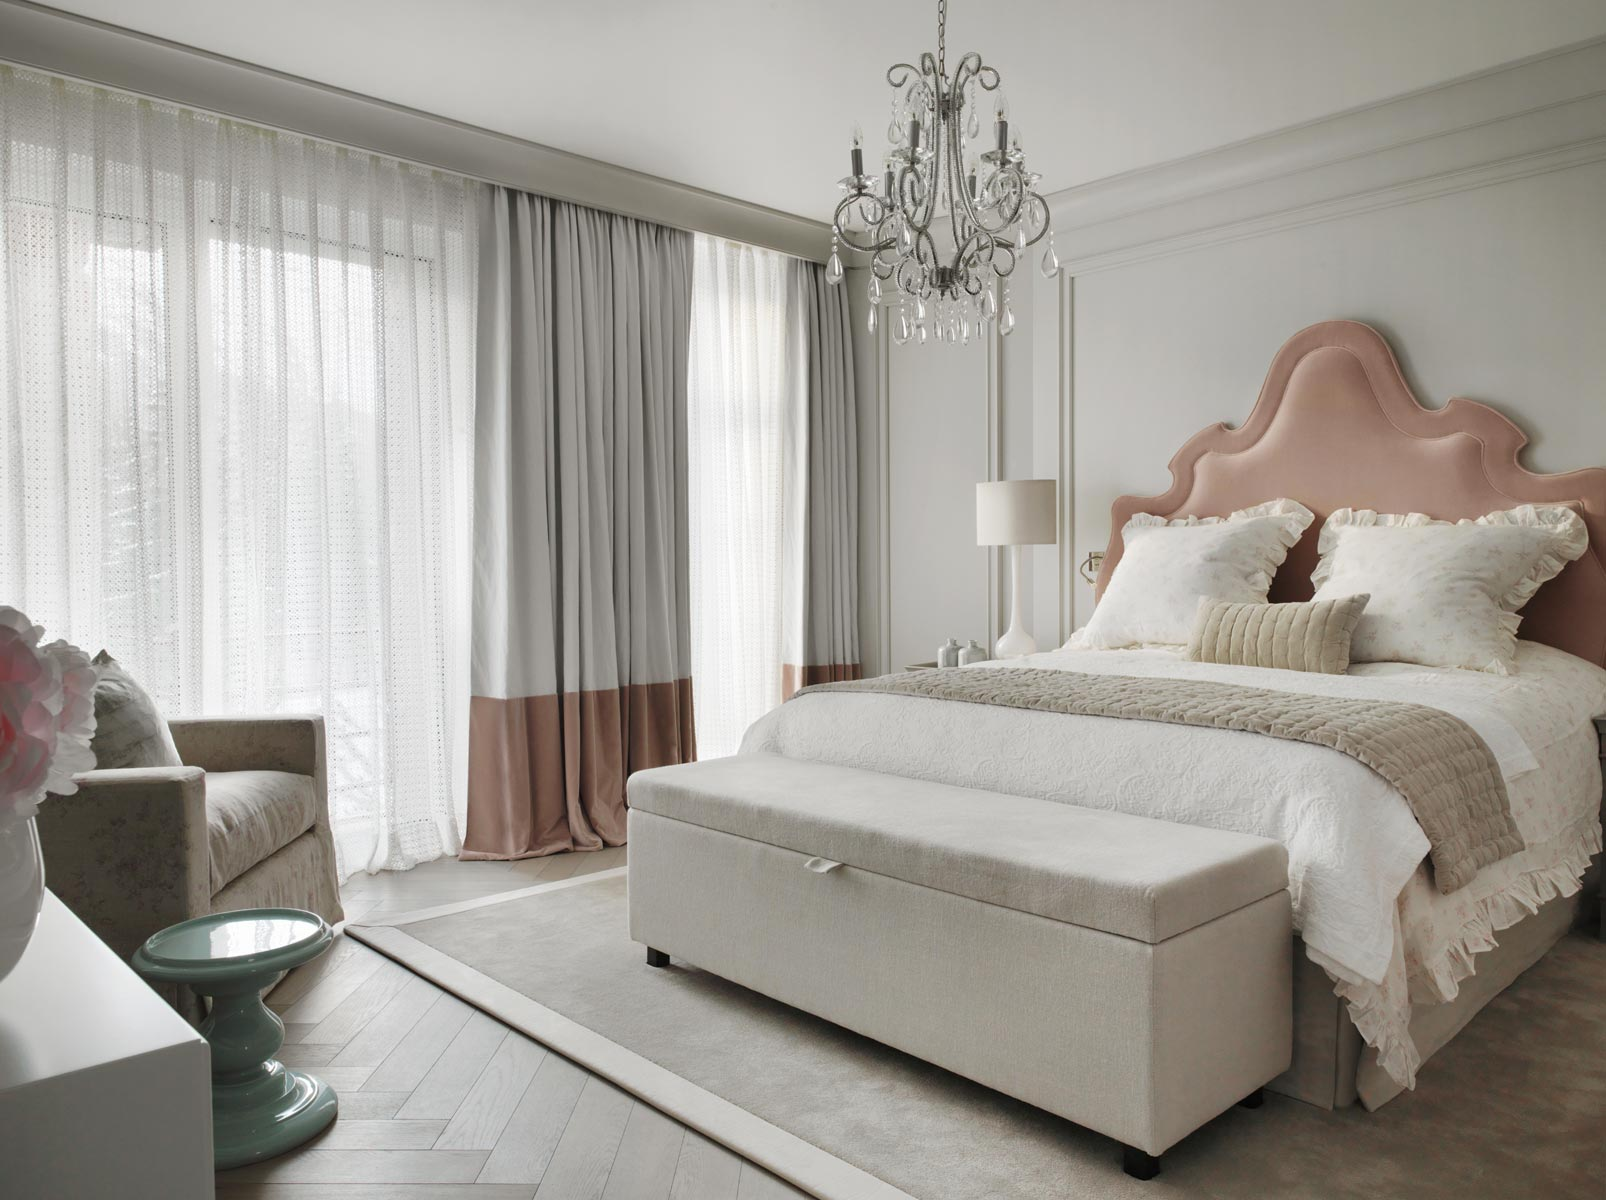 Top 10 kelly hoppen design ideas - Designer bedroom picture ...